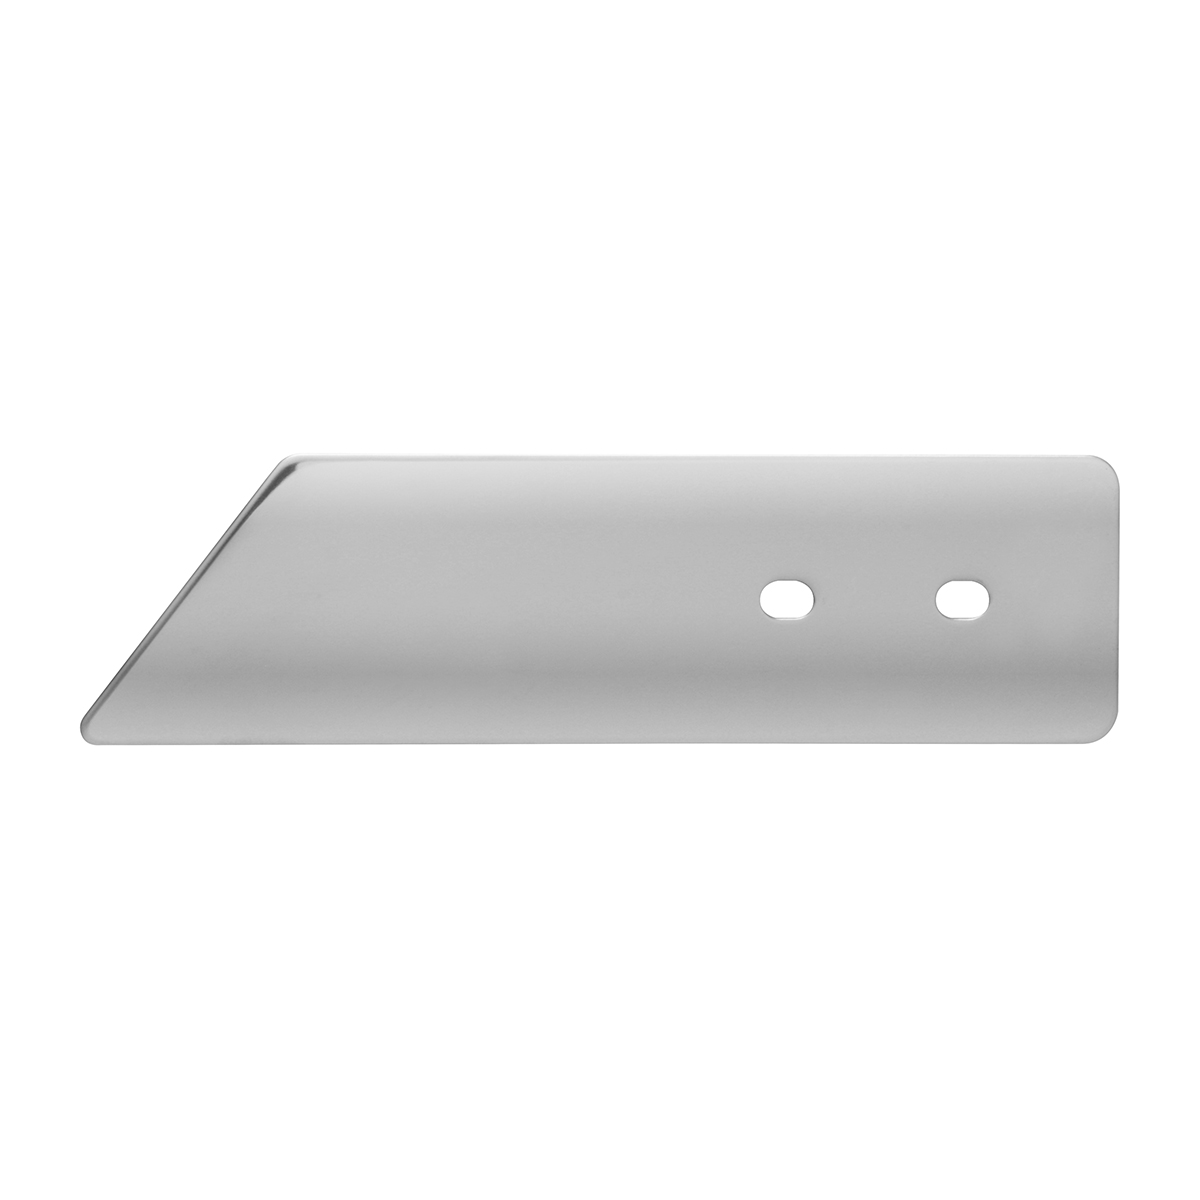 50230 FLT Stainless Steel Hood Latch Guard